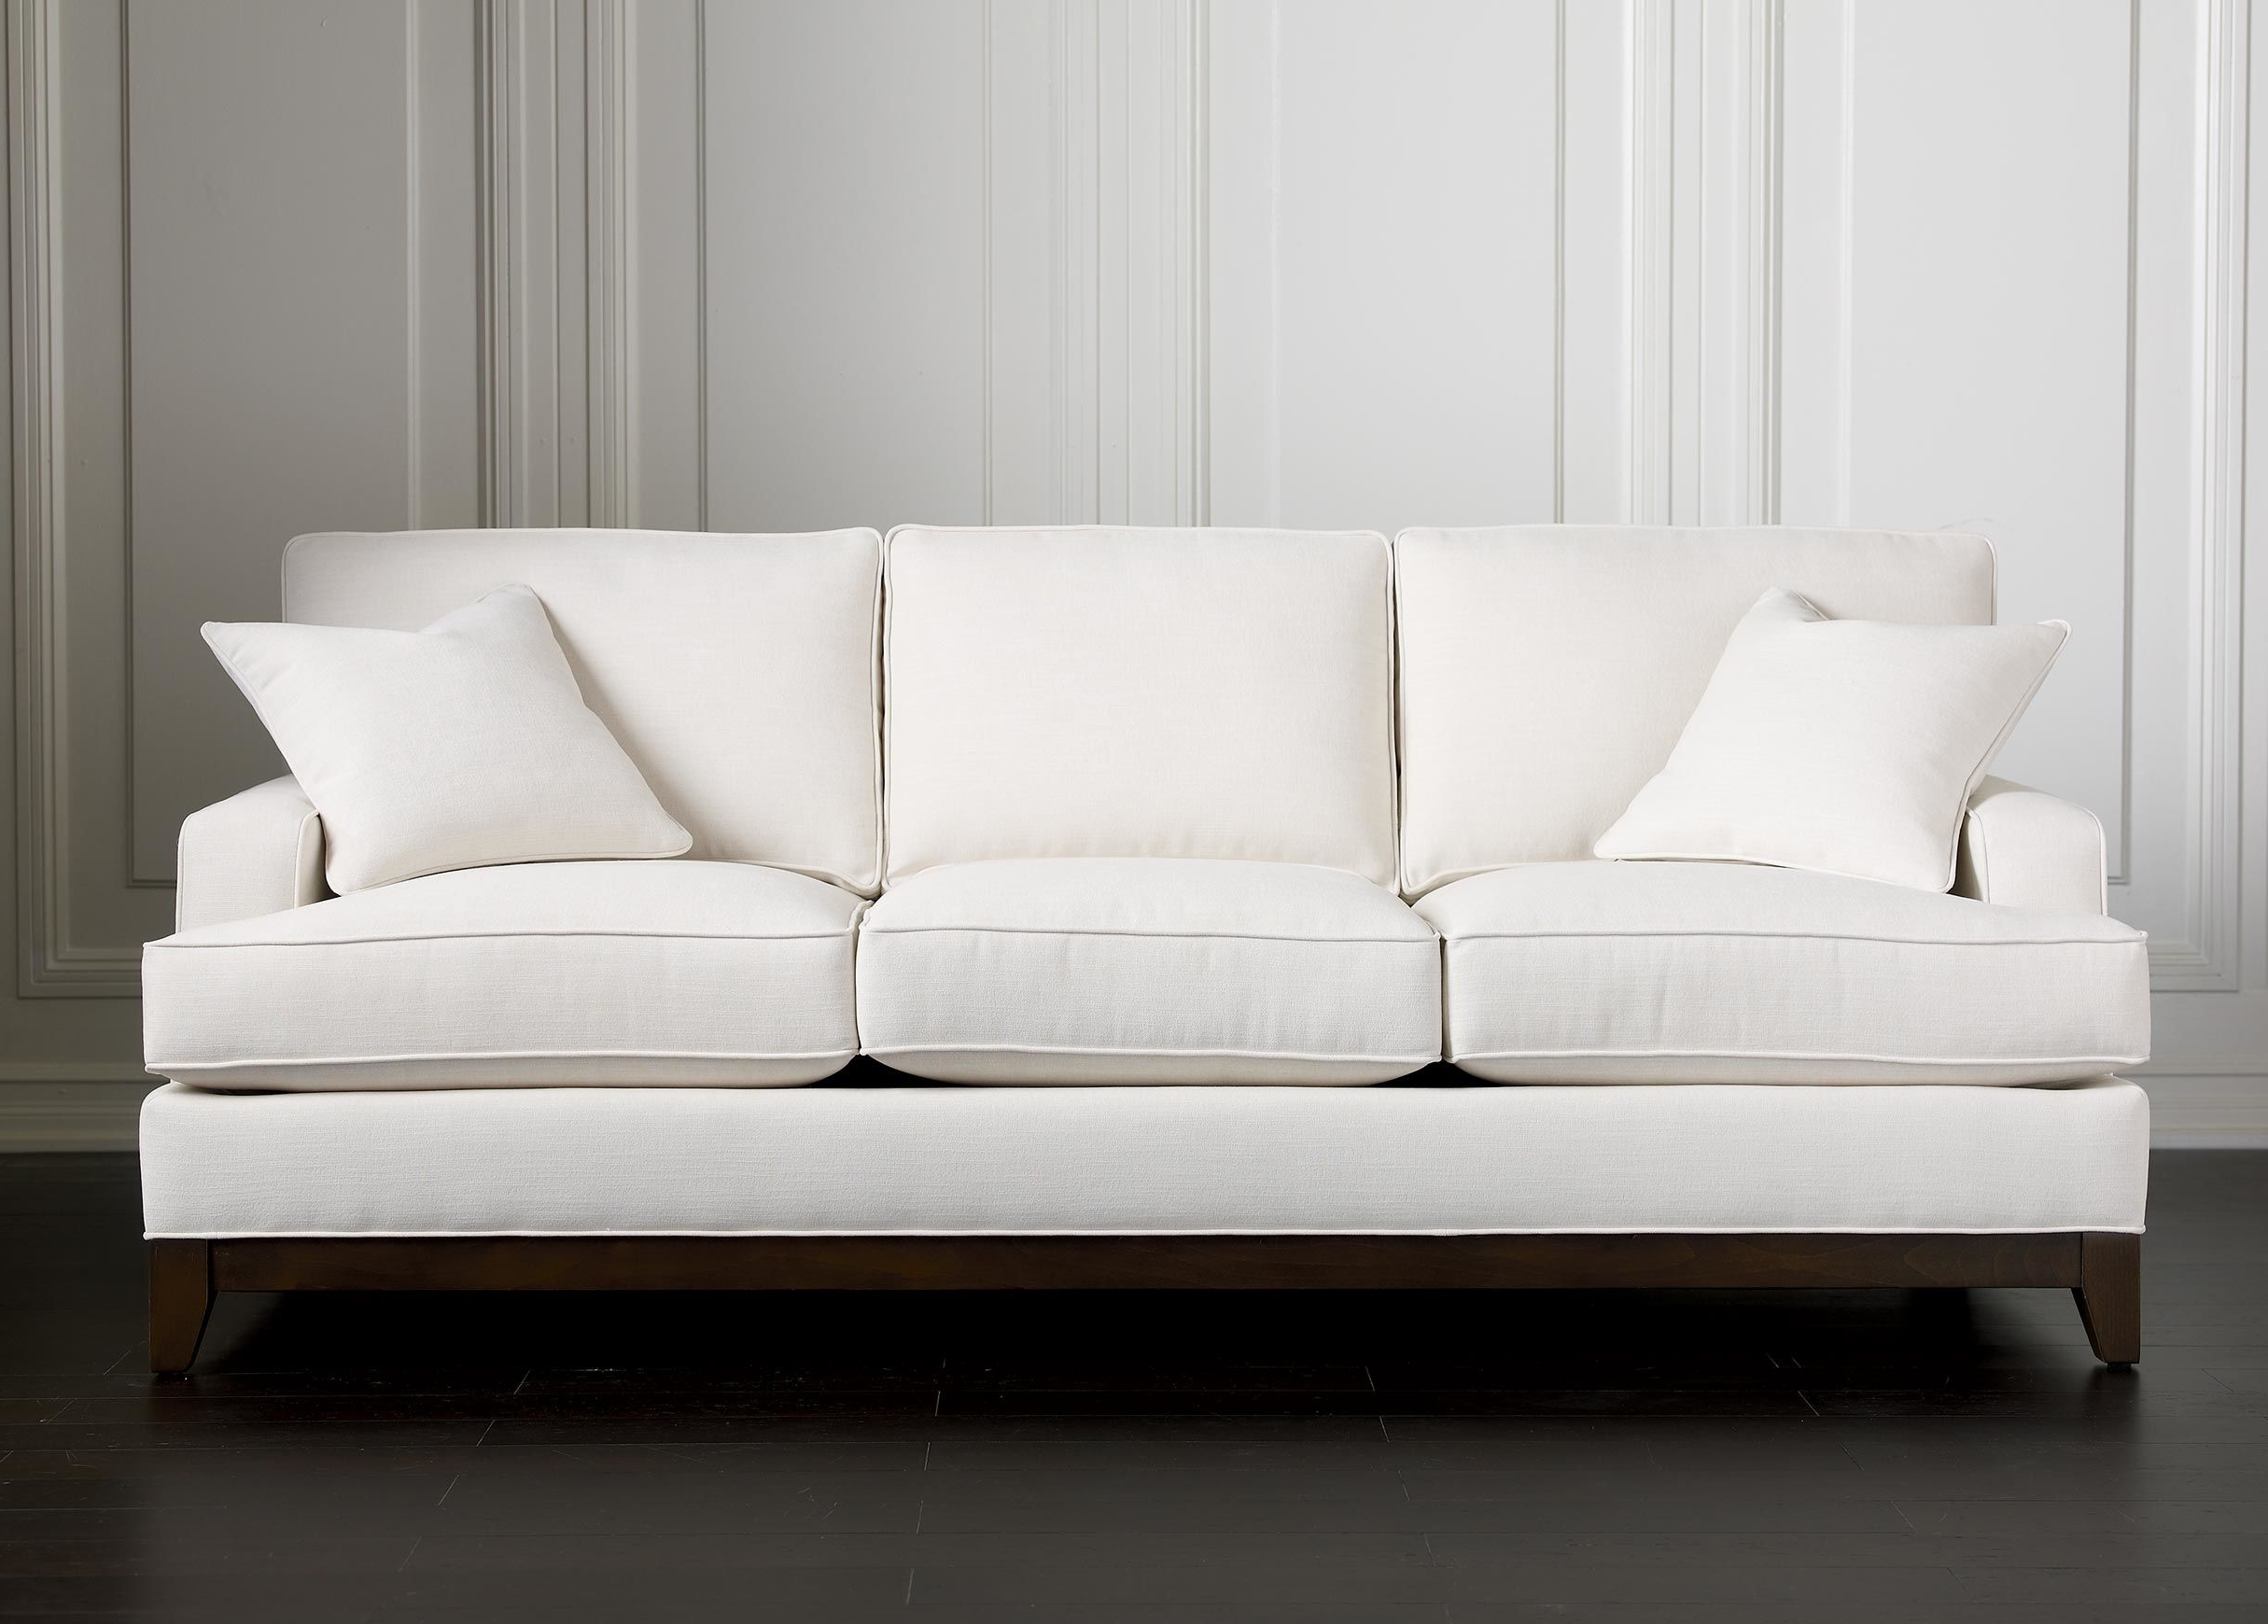 Photos of Sectional Sofas At Ethan Allen (Showing 16 of 20 ...